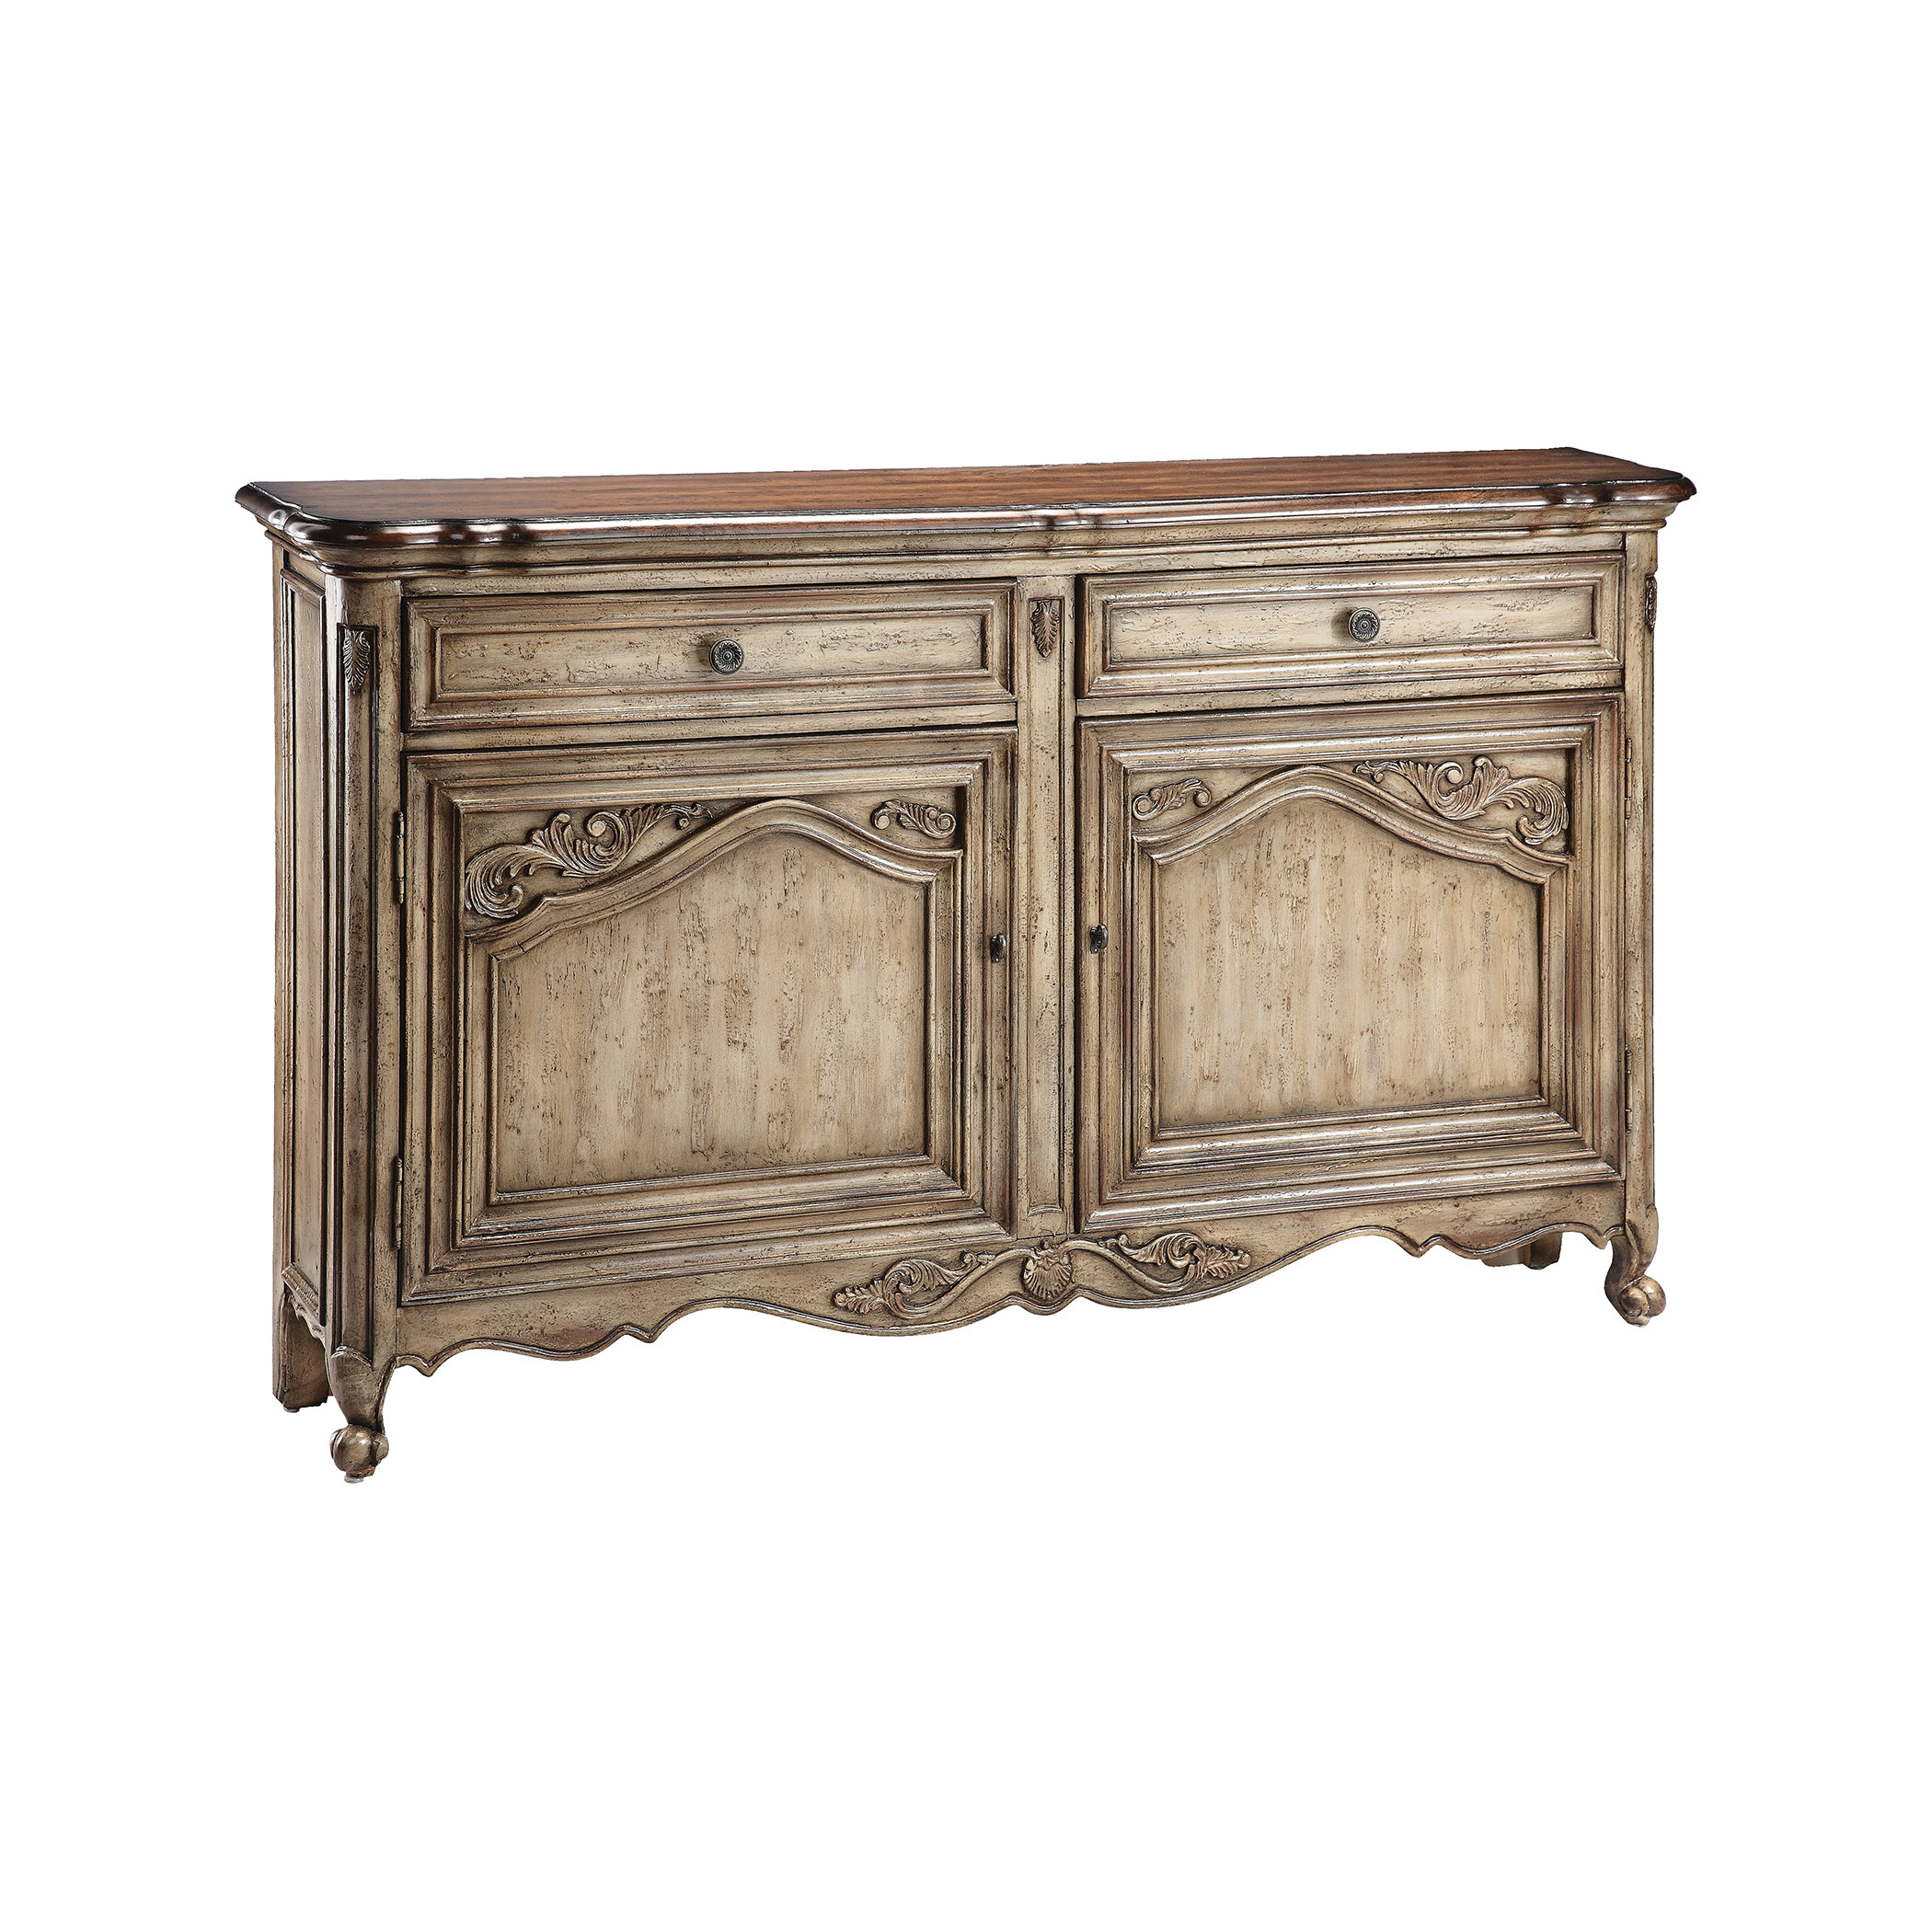 Darby Home Co Dormer Sideboard With Regard To Recent Shoreland Sideboards (#6 of 20)